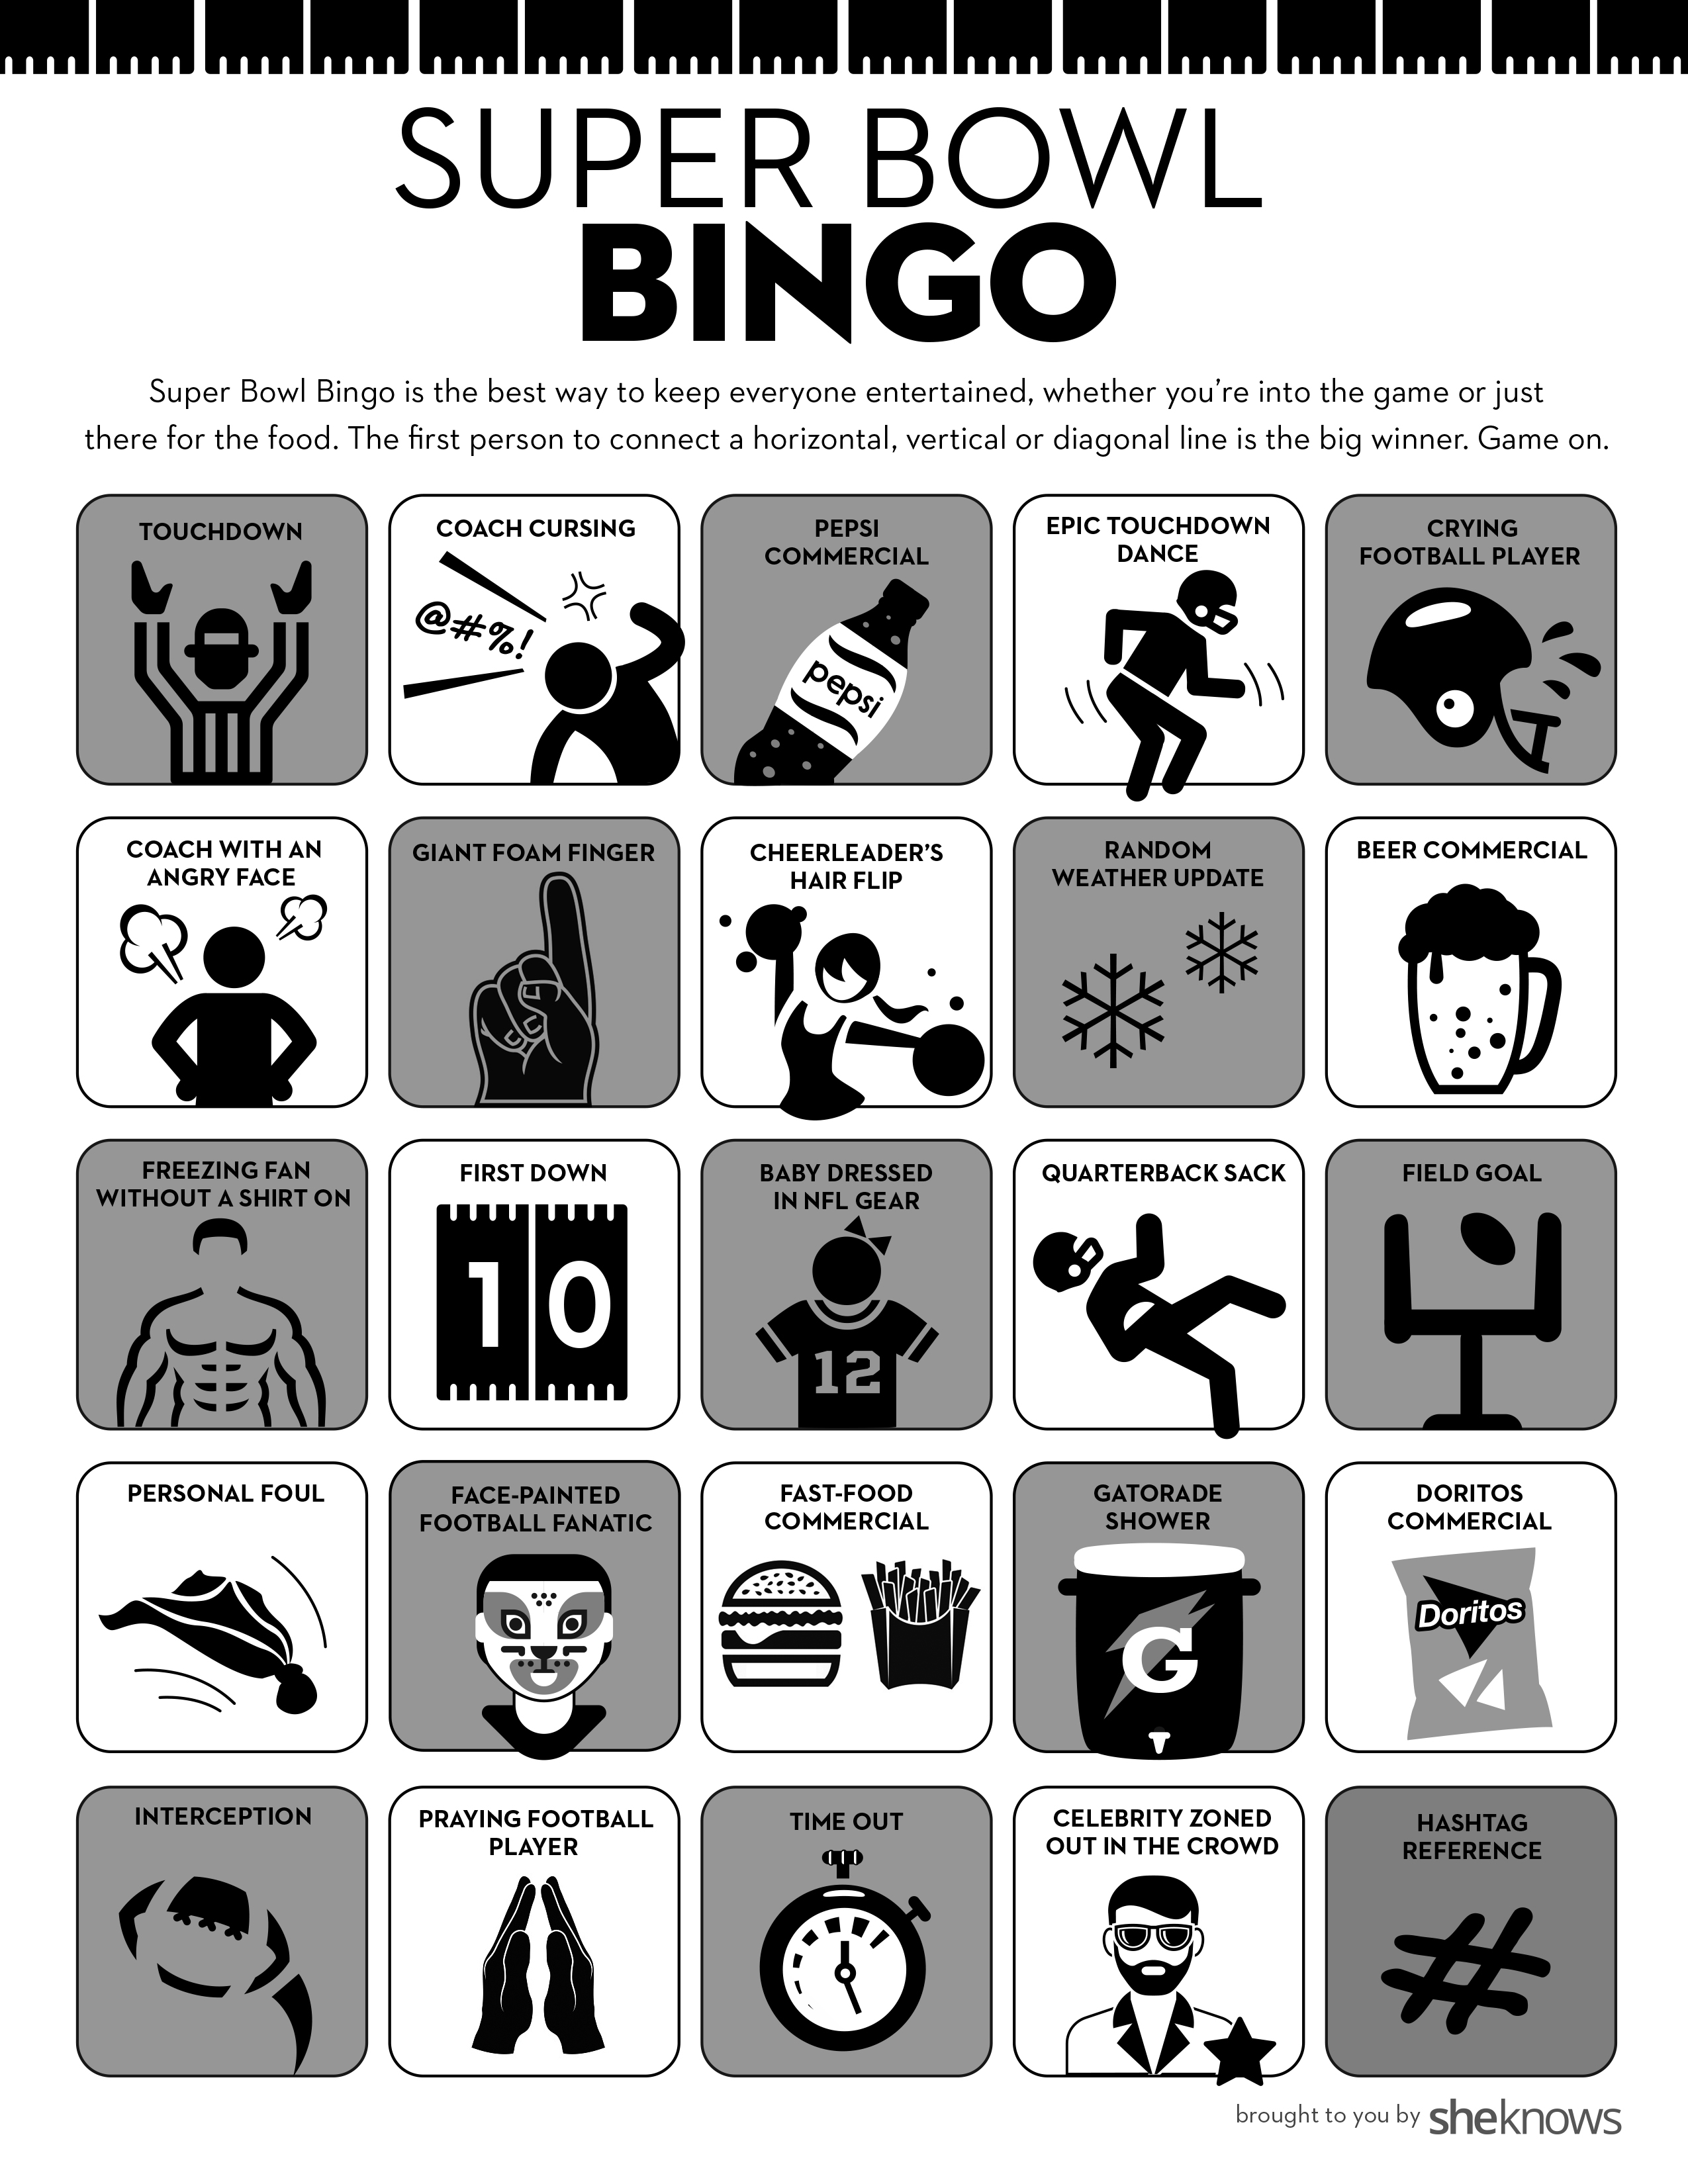 Super Bowl Bingo Is The Perfect Party Game For Everyone